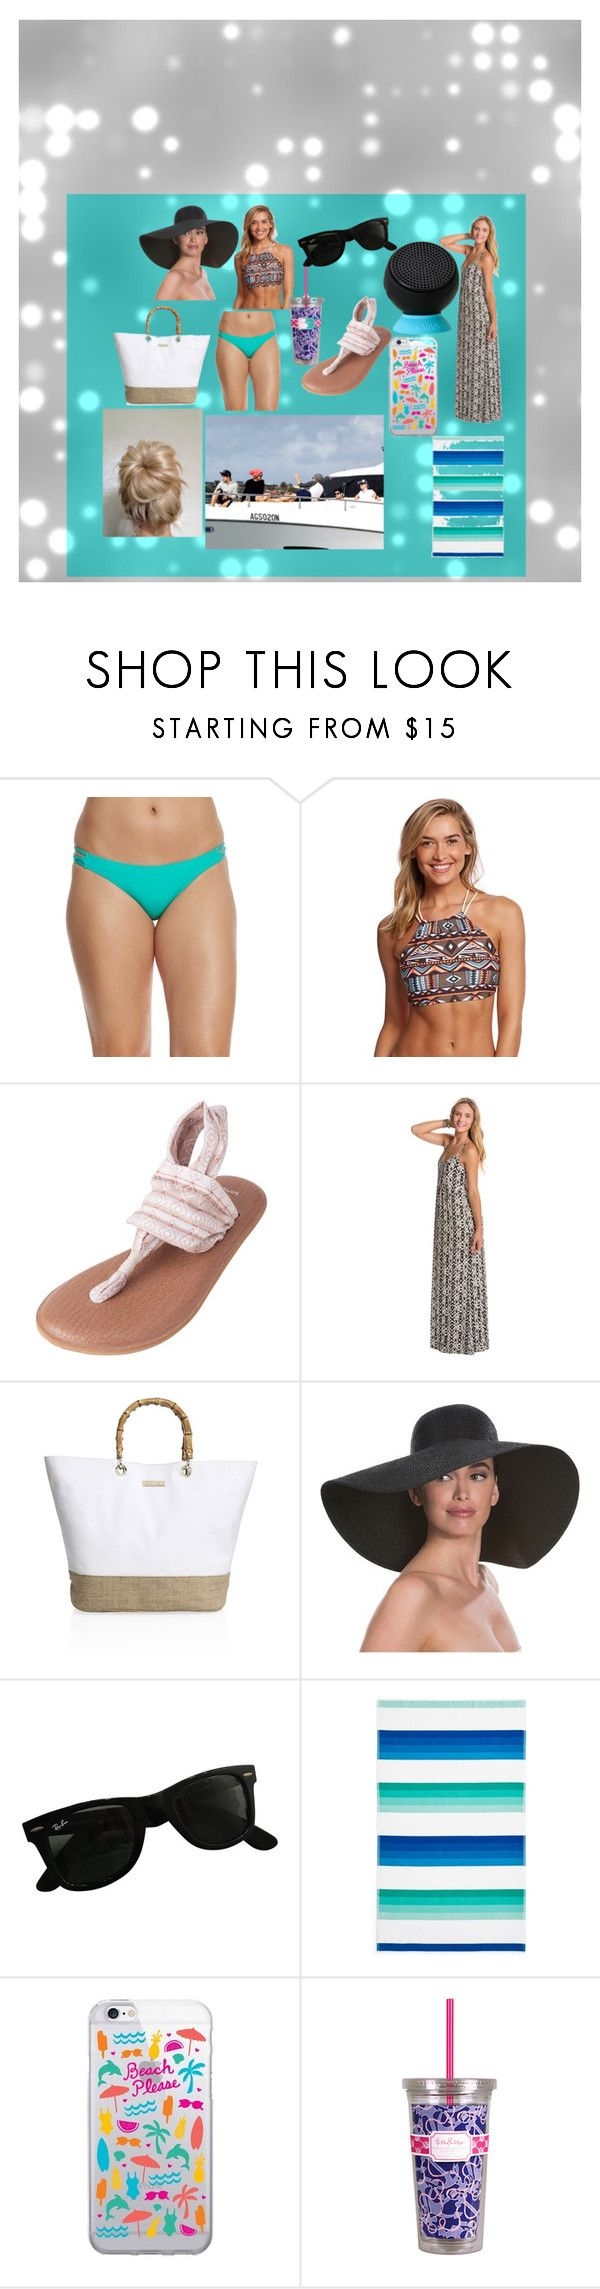 """The Beach with Bae"" by reagans-2 on Polyvore featuring Eidon, Swim Systems, sanuk, Volcom, Heidi Klein, Eric Javits, Ray-Ban, Sky, OTM Essentials and Lilly Pulitzer"